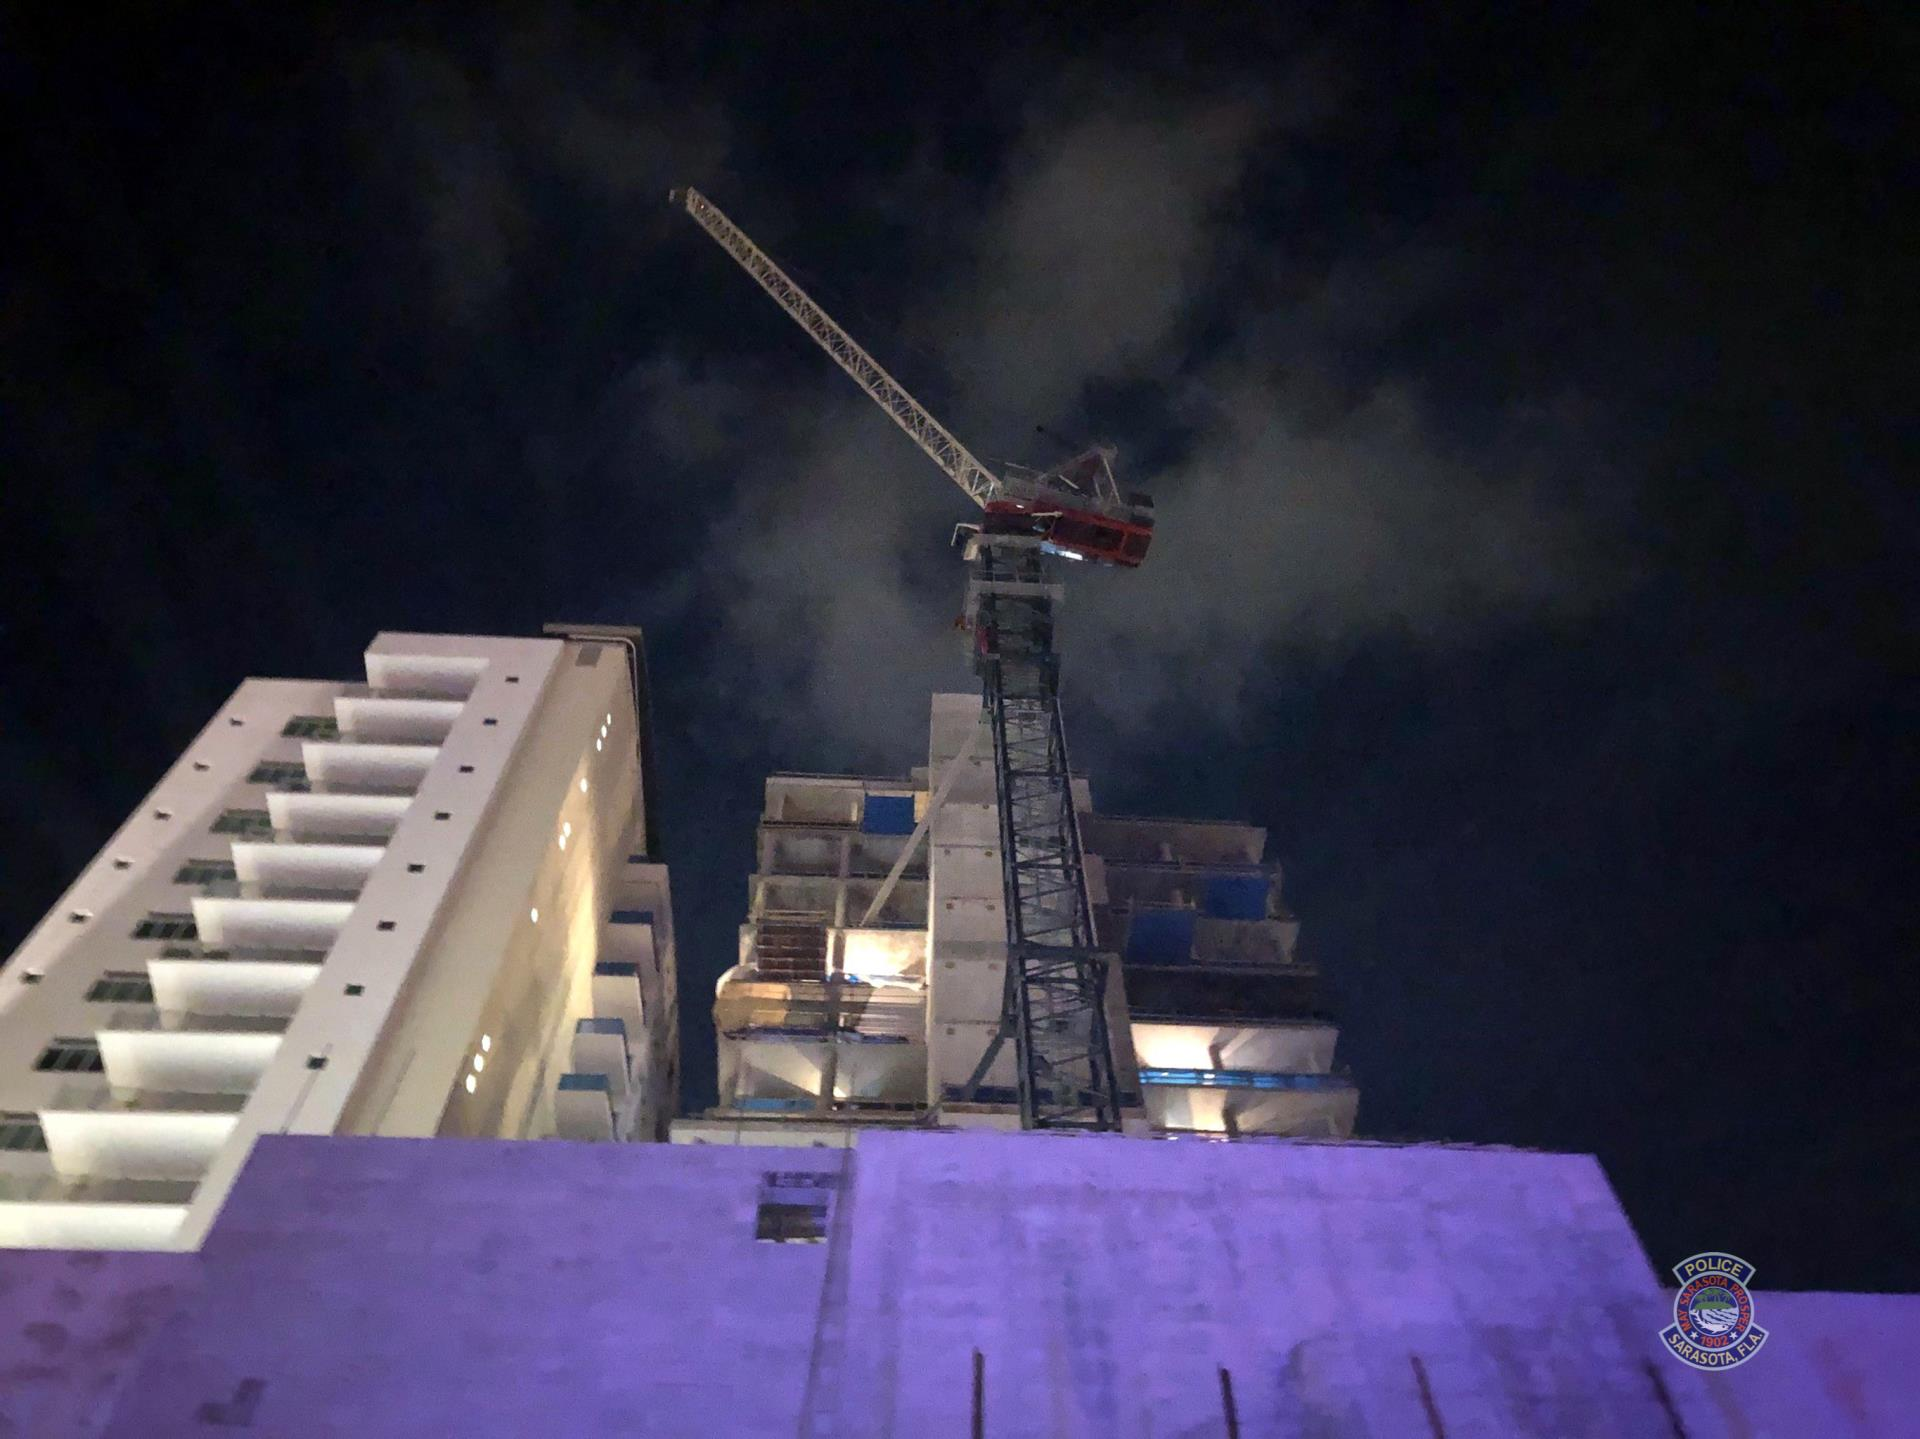 Two men arrested in Sarasota after caught climbing on construction crane